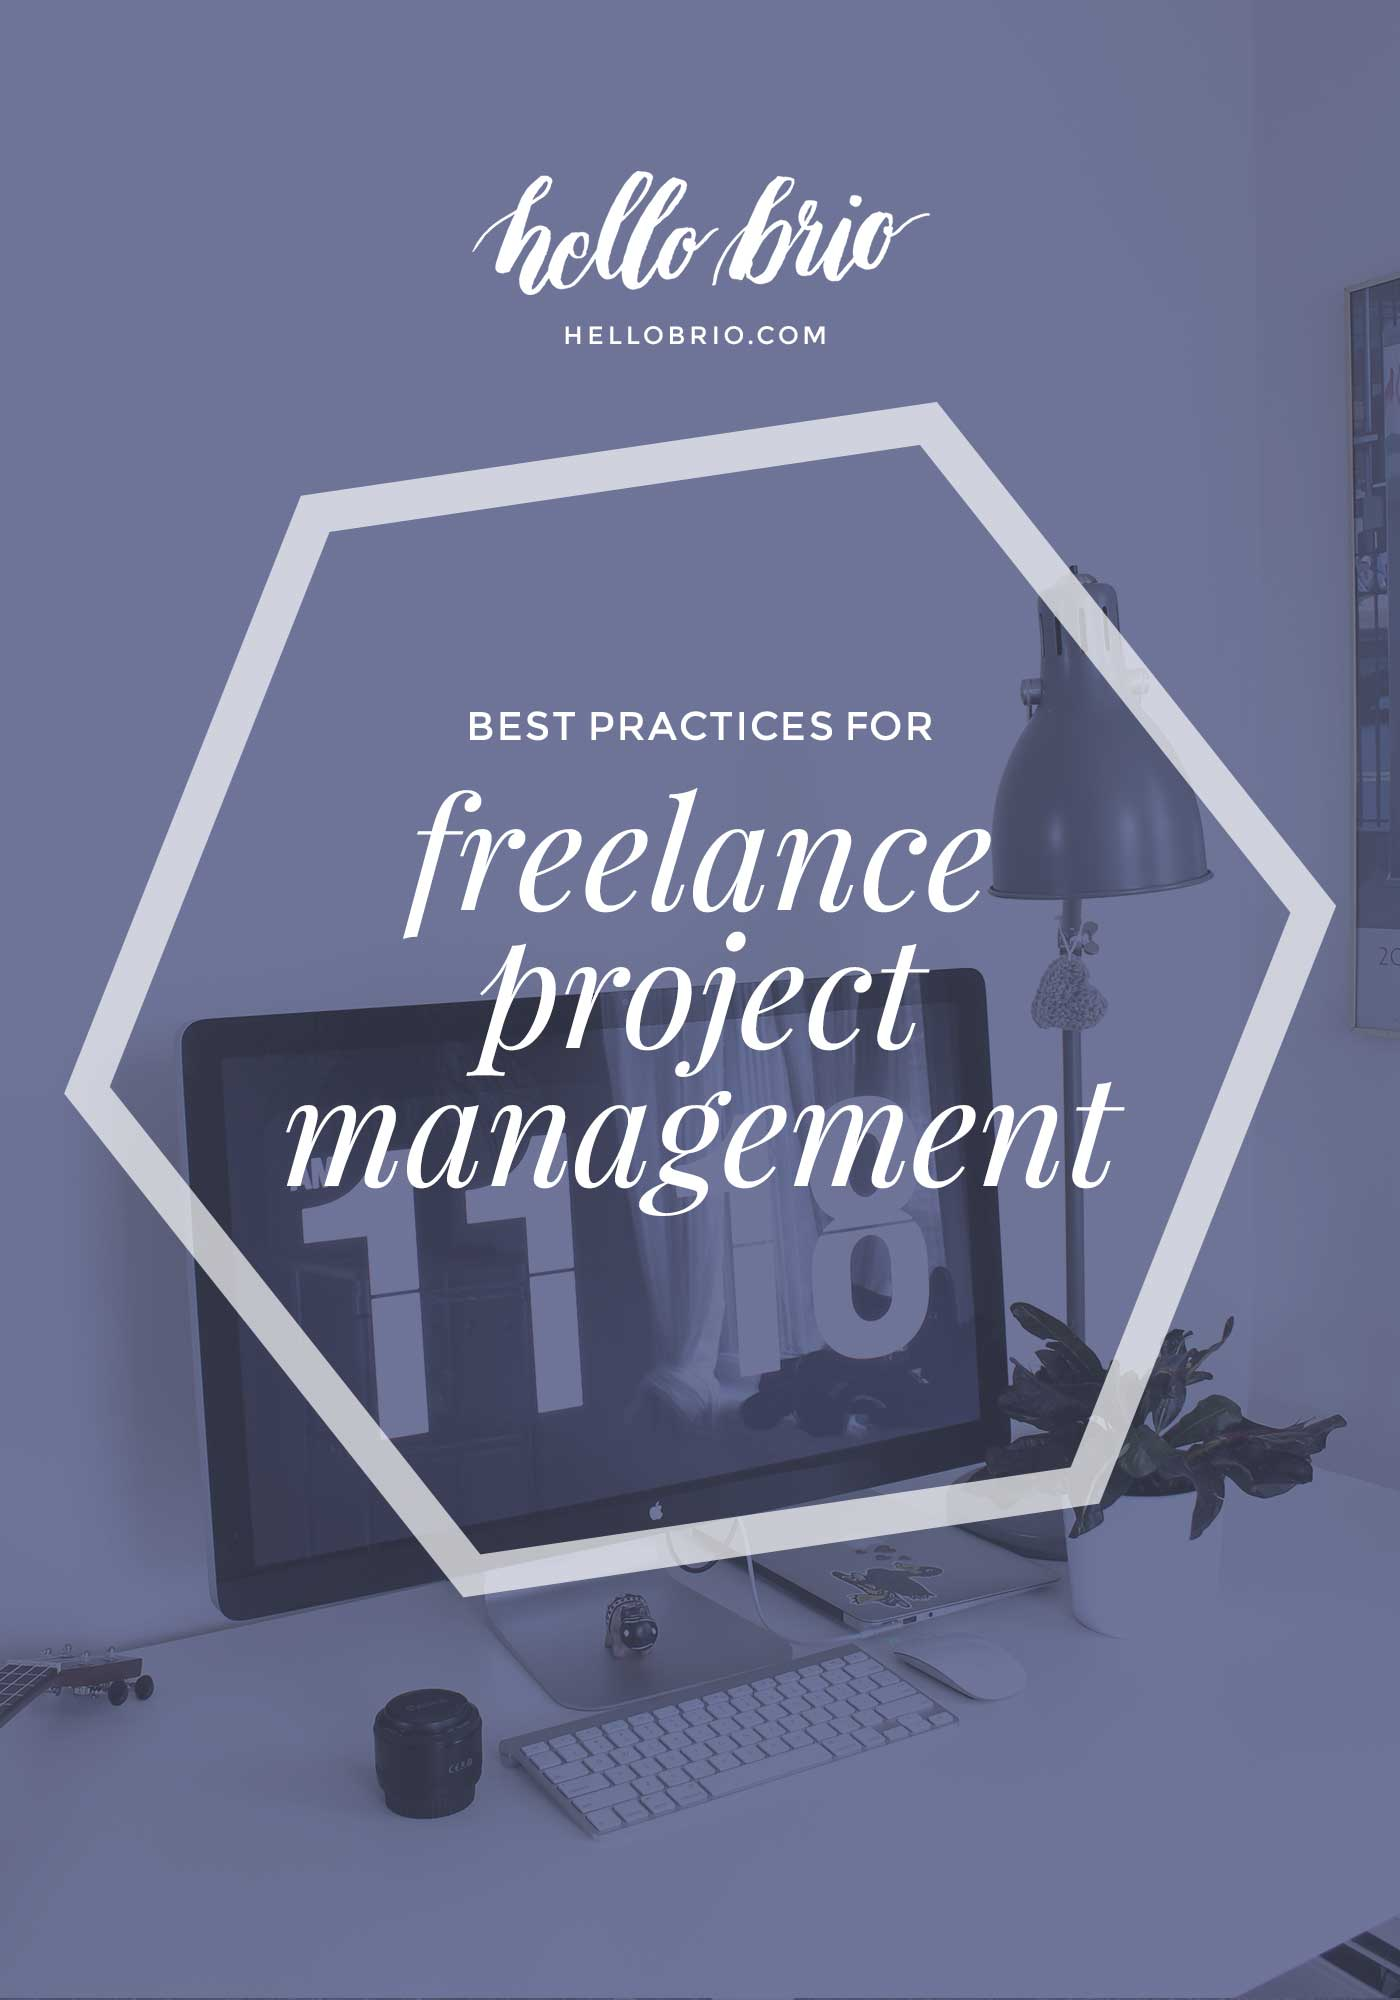 Best practices for freelance project management - productivity